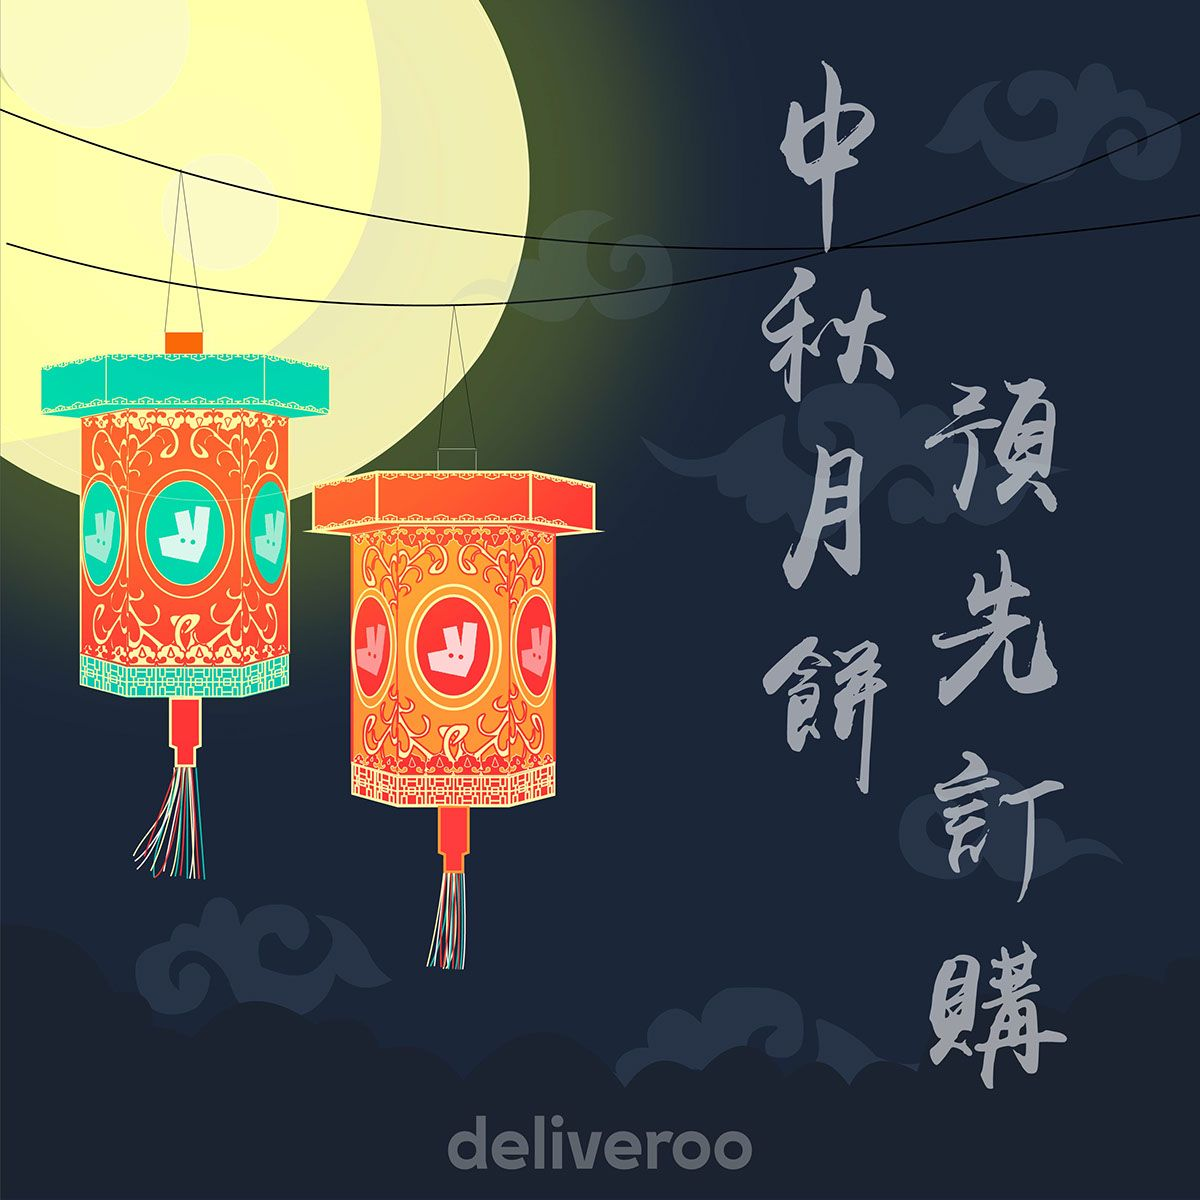 Deliveroo Hk Mid Autumn Festival Champaign On Behance